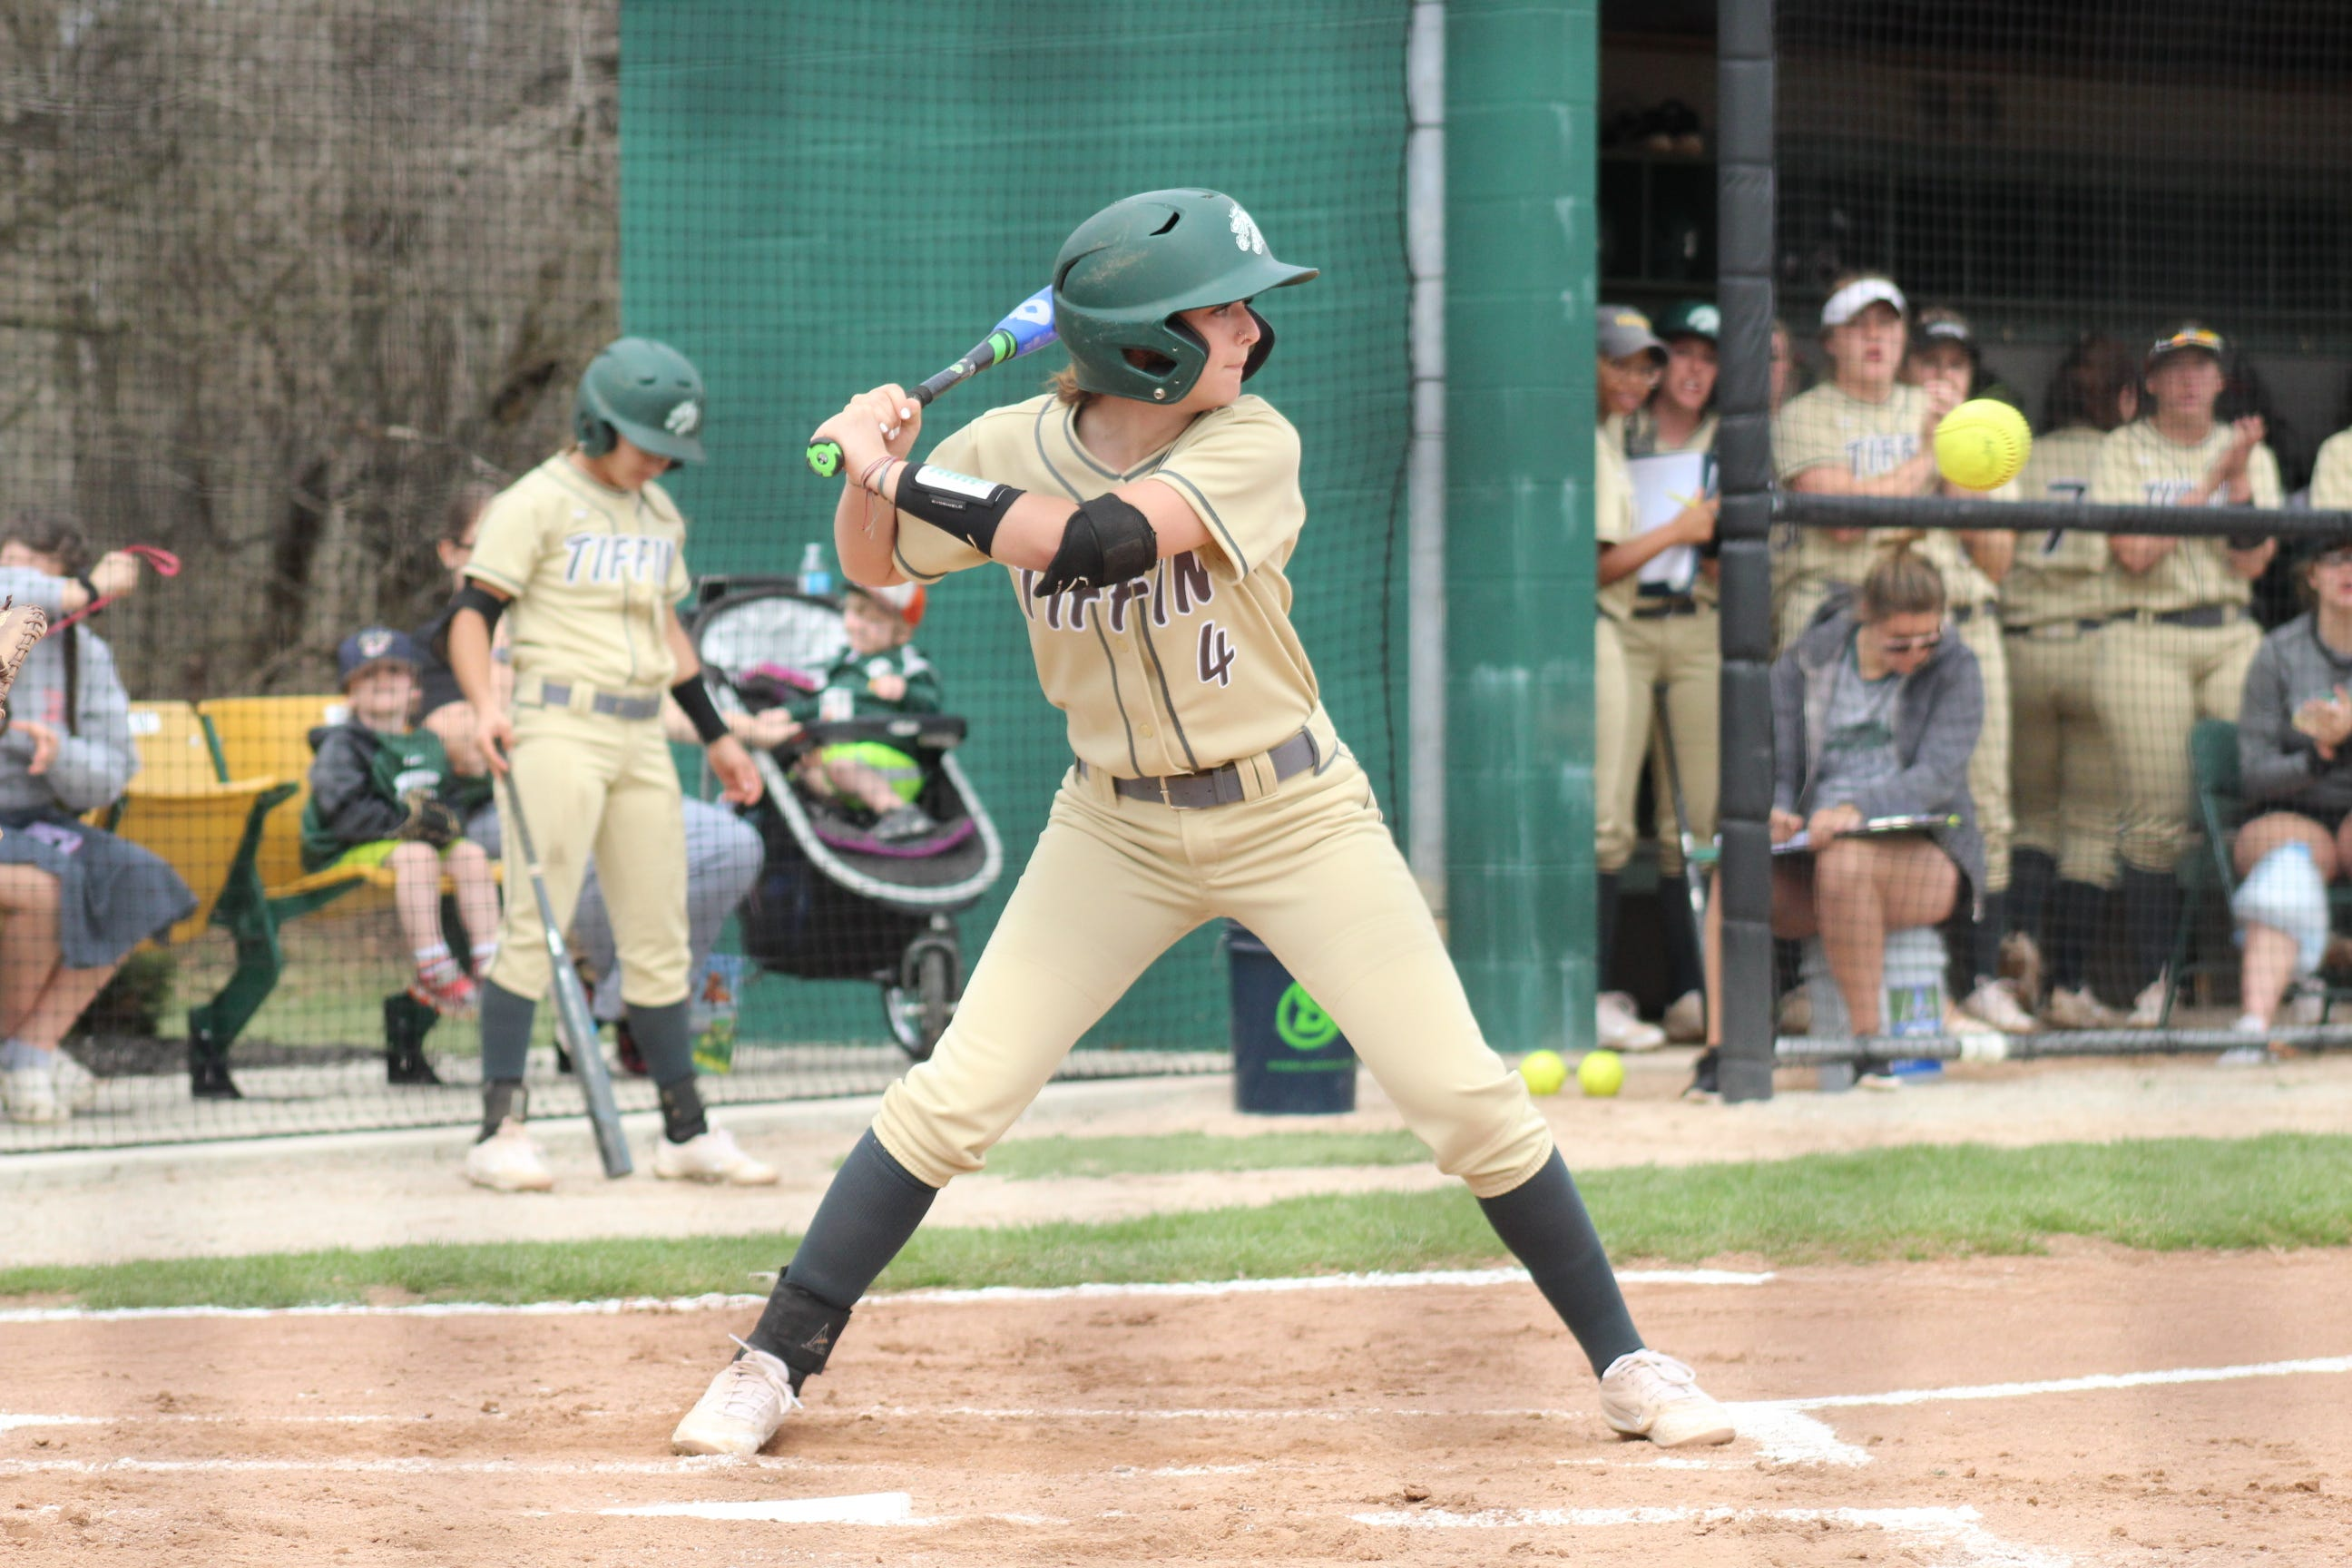 Former Lancaster standout Brooke Lambert and current Tiffin University junior shortstop Brooke Lambert was named the Great Midwest Athletic Conference Player of the Week after she went 11-for-17 to help lead the Dragons to four consecutive wins.